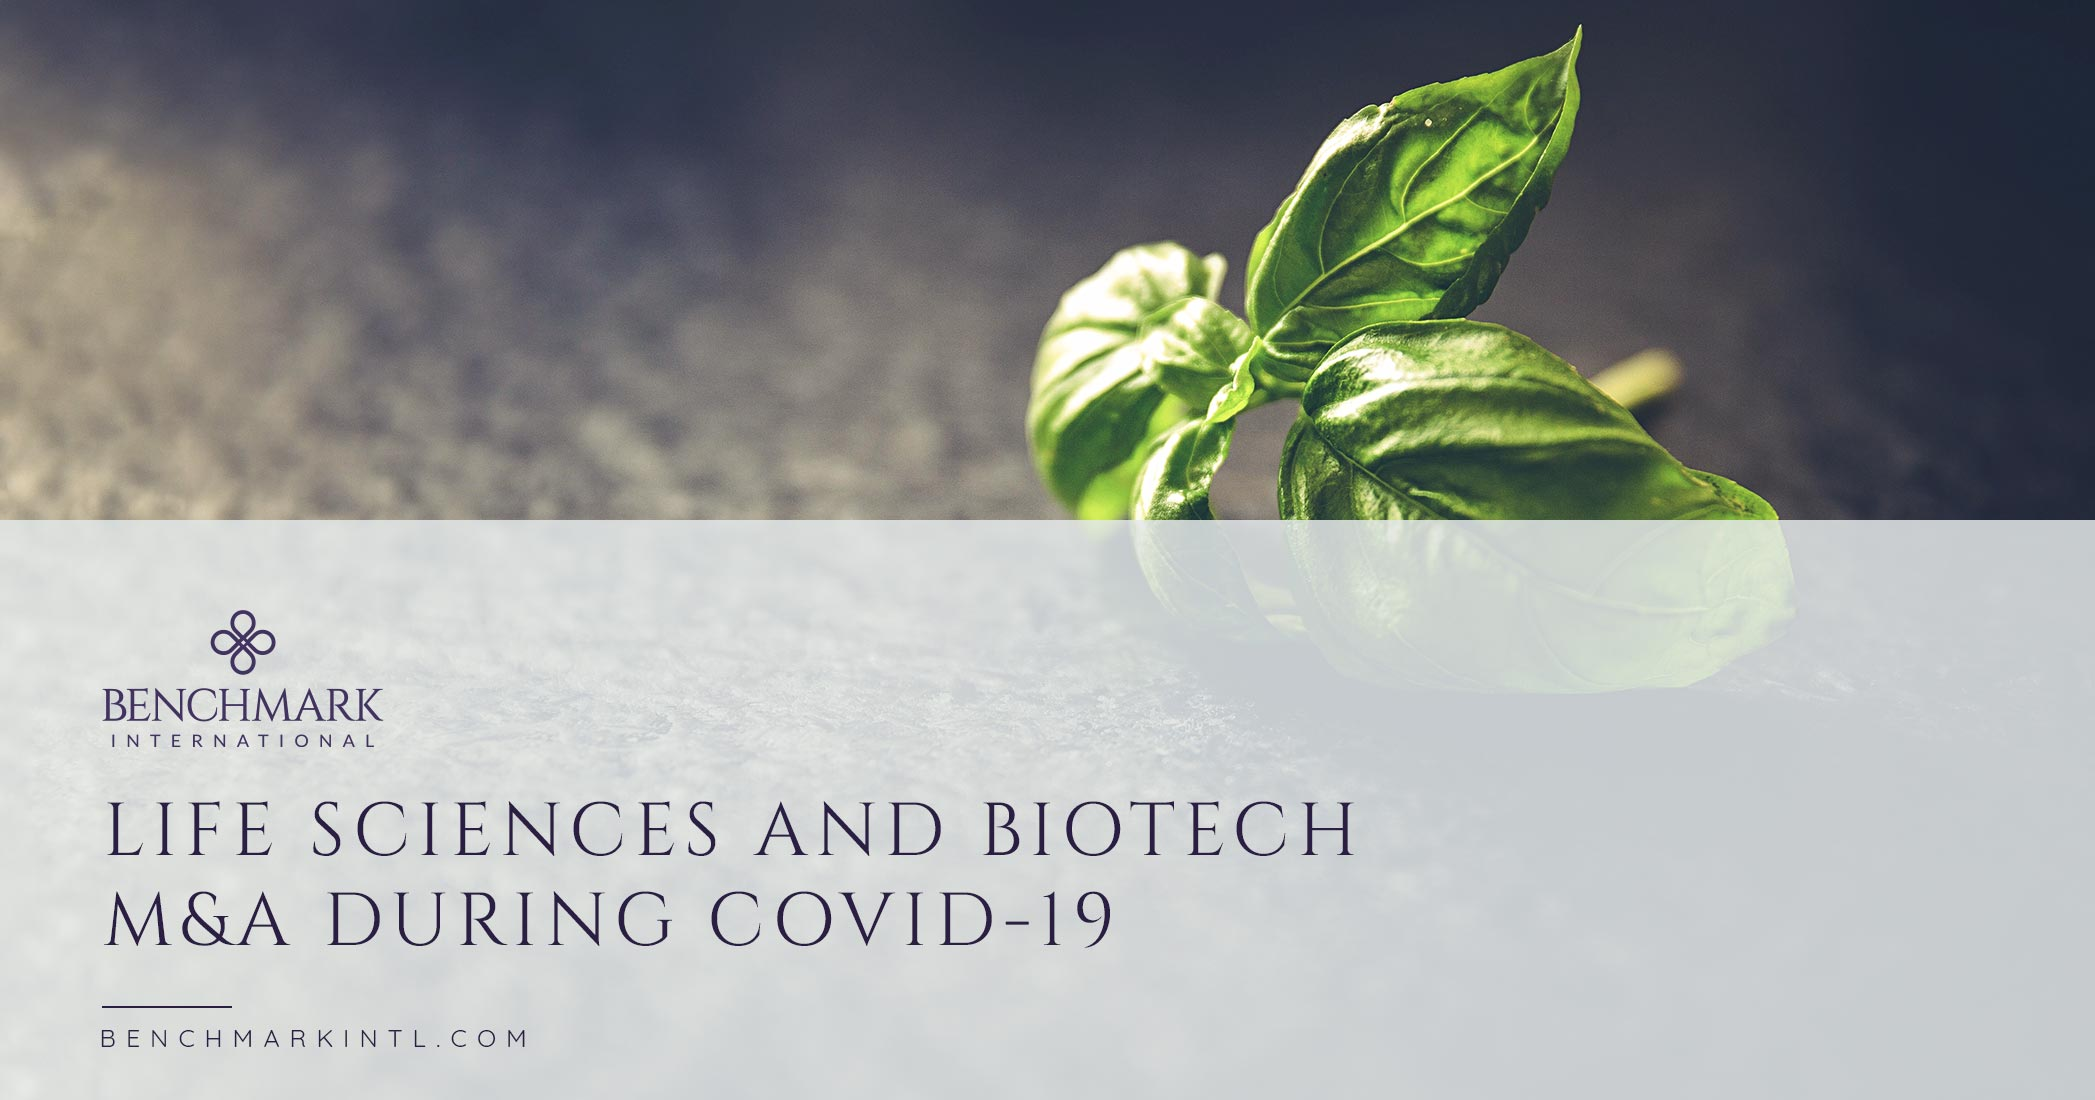 Life Sciences And Biotech M&A During Covid-19